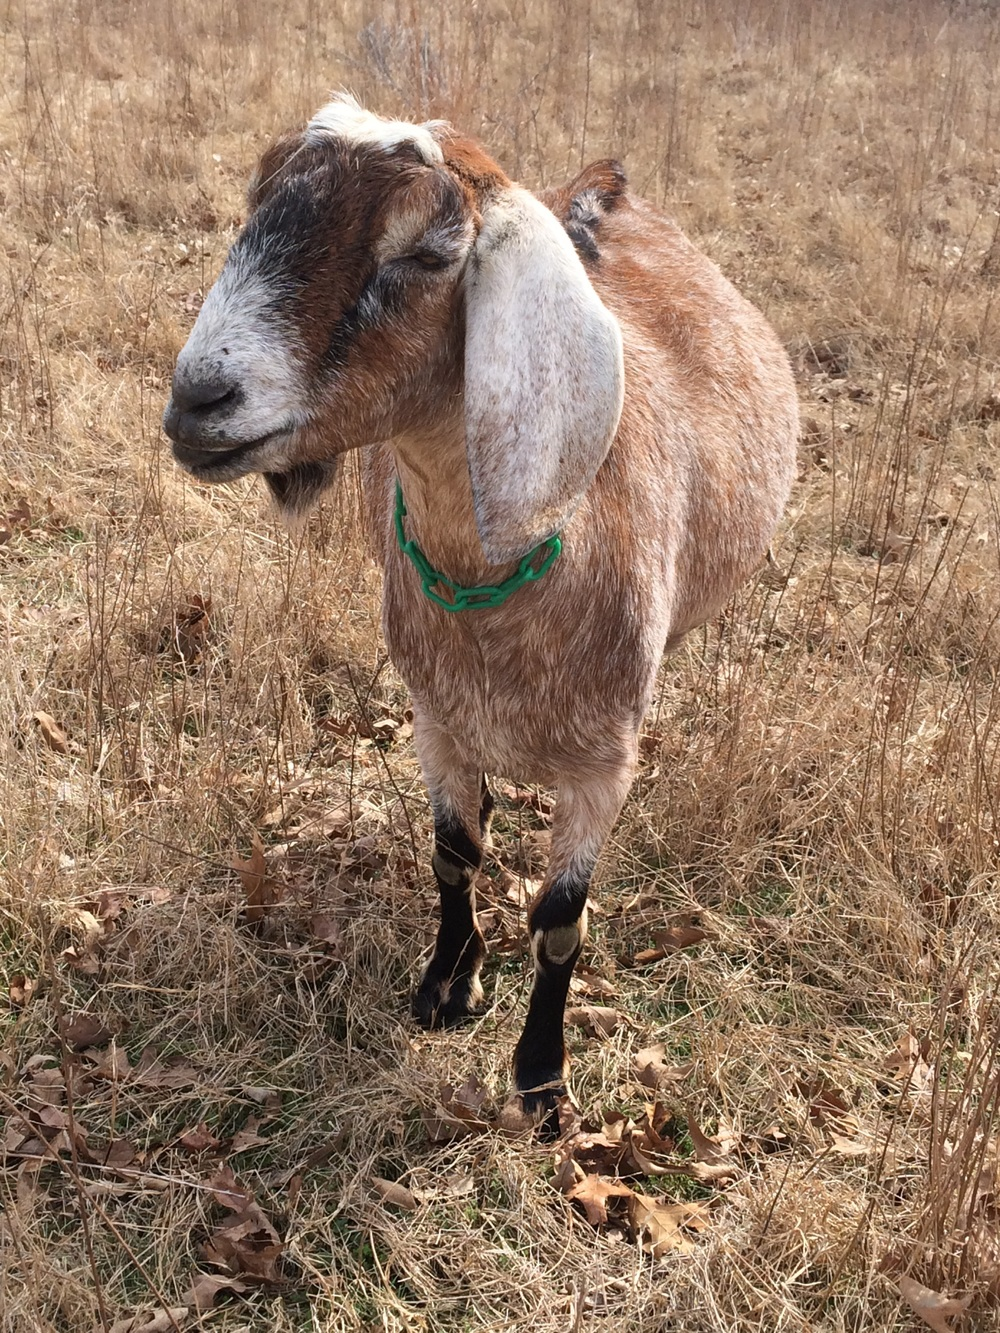 Nutmeg tolerates the rest of the goats, but I am her herd. If I'm working in the house, she spends most of her day grazing in the corner of the field closest to me. When I head down to the barn, she heads that way, too.